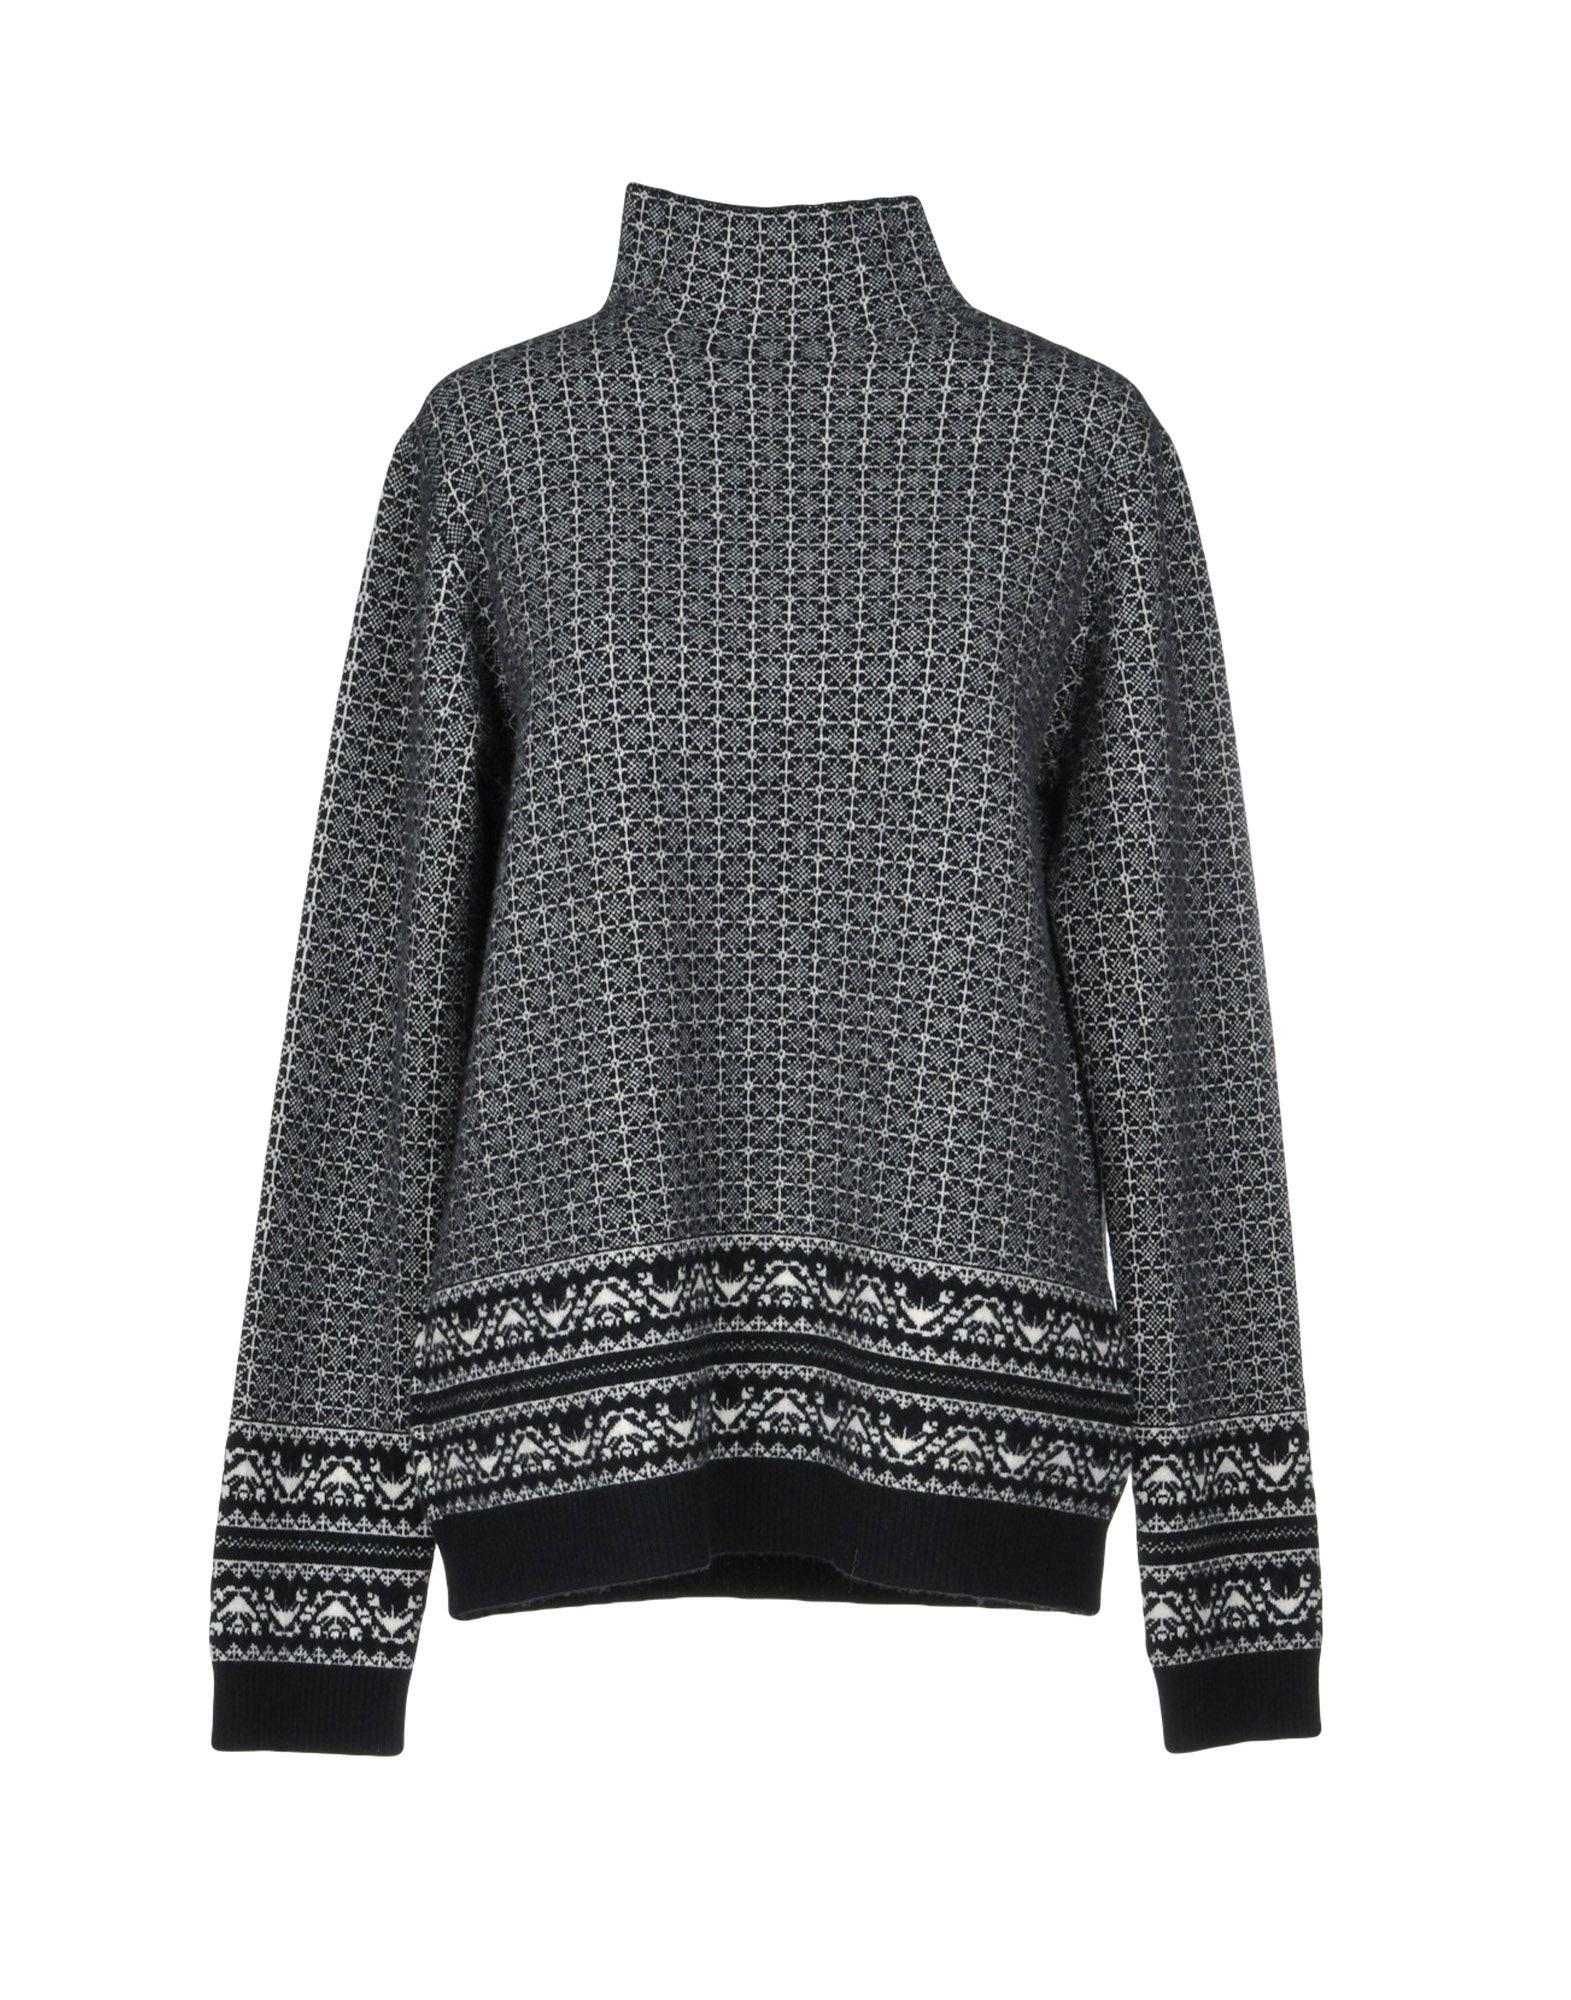 KNITWEAR - Turtlenecks Lamberto Losani Sale Pick A Best gX1J7